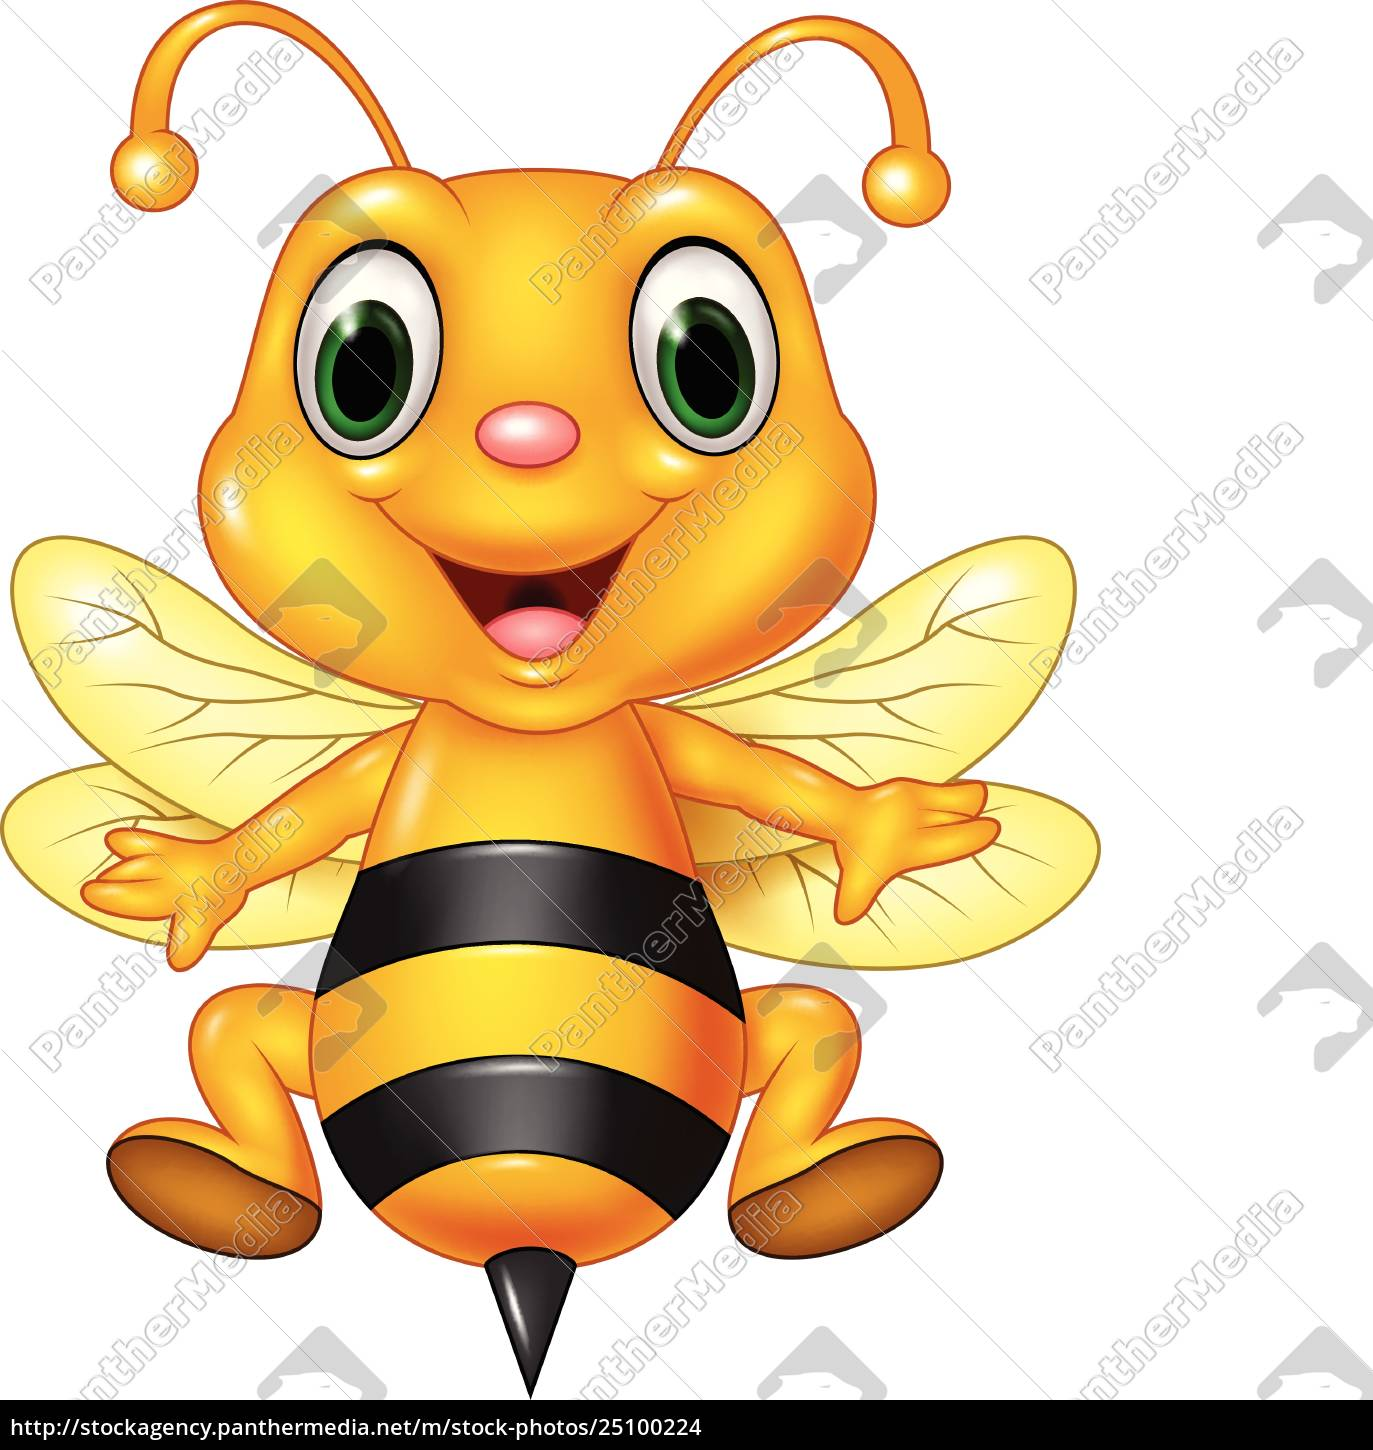 100 Pictures Cartoon Characters royalty free vector 25100224 - cartoon funny bee flying isolated on white  background